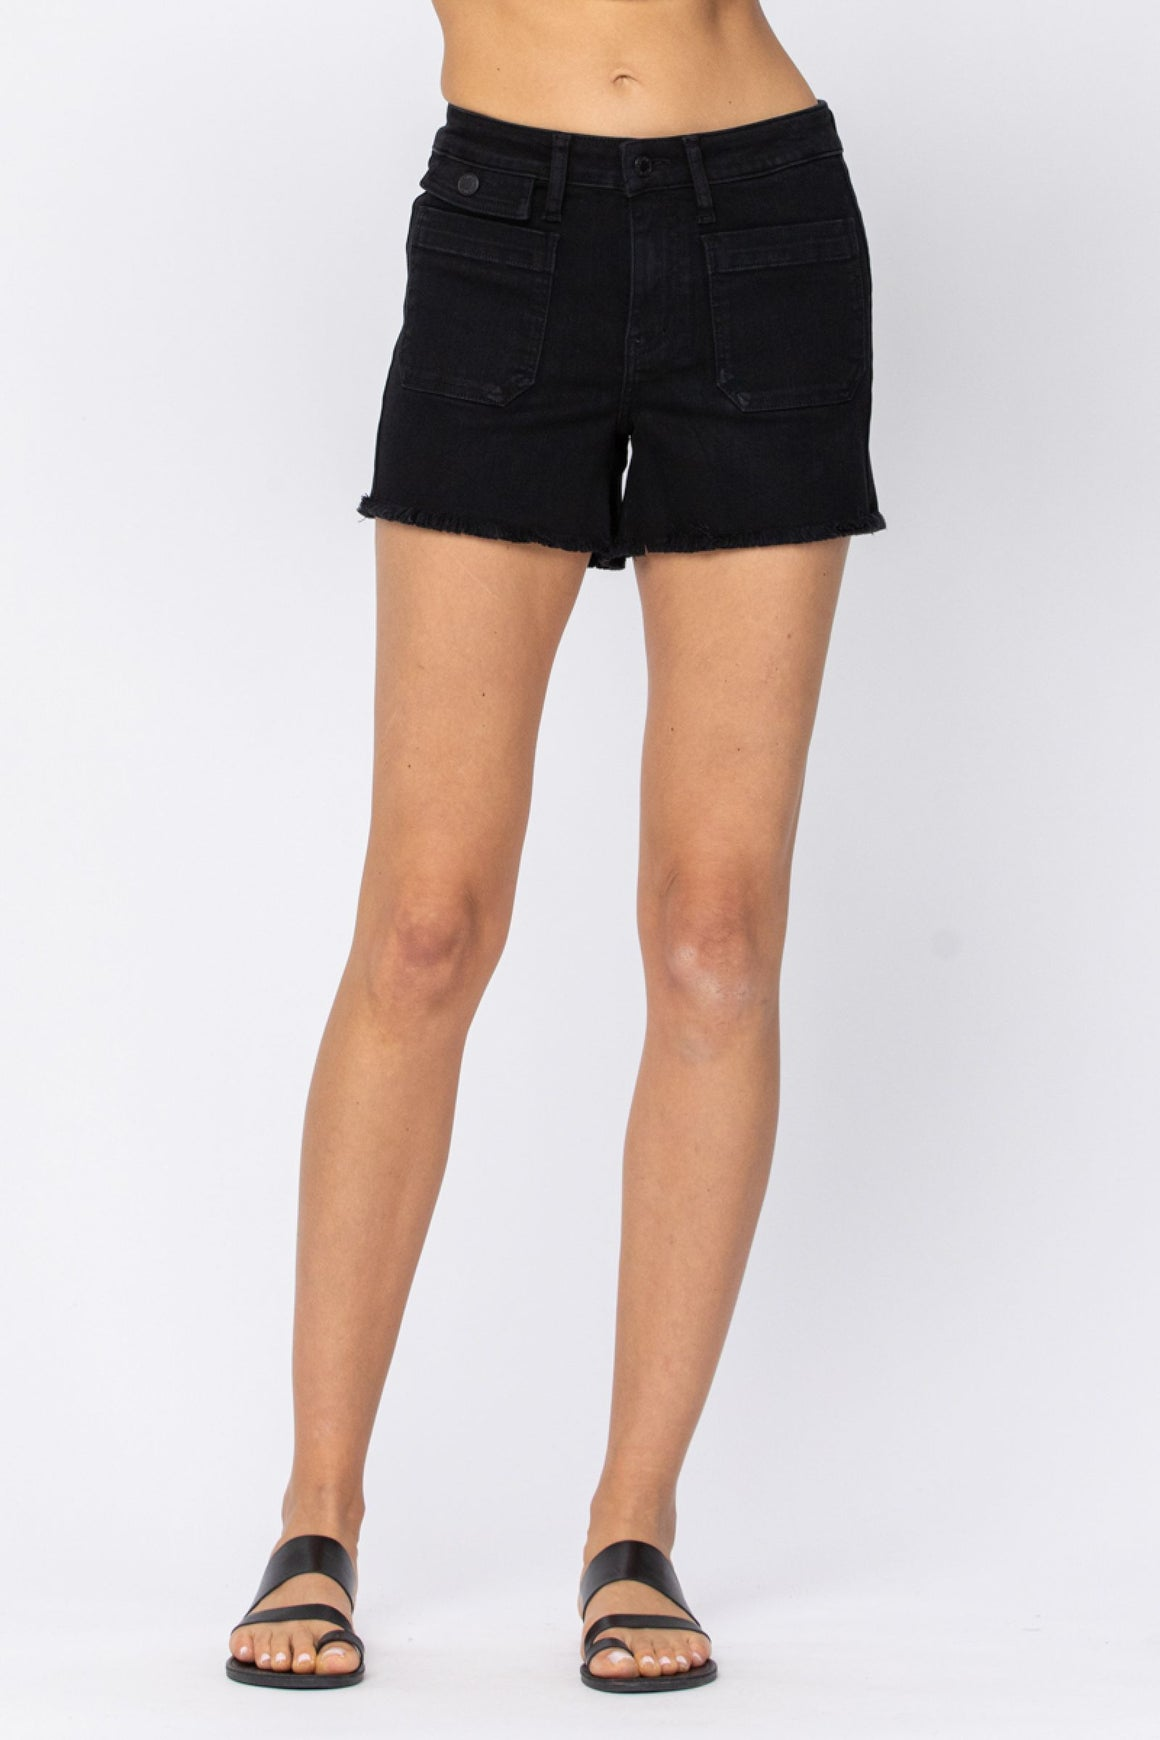 Judy Blue Cargo Patch Pocket Black Short- 150067